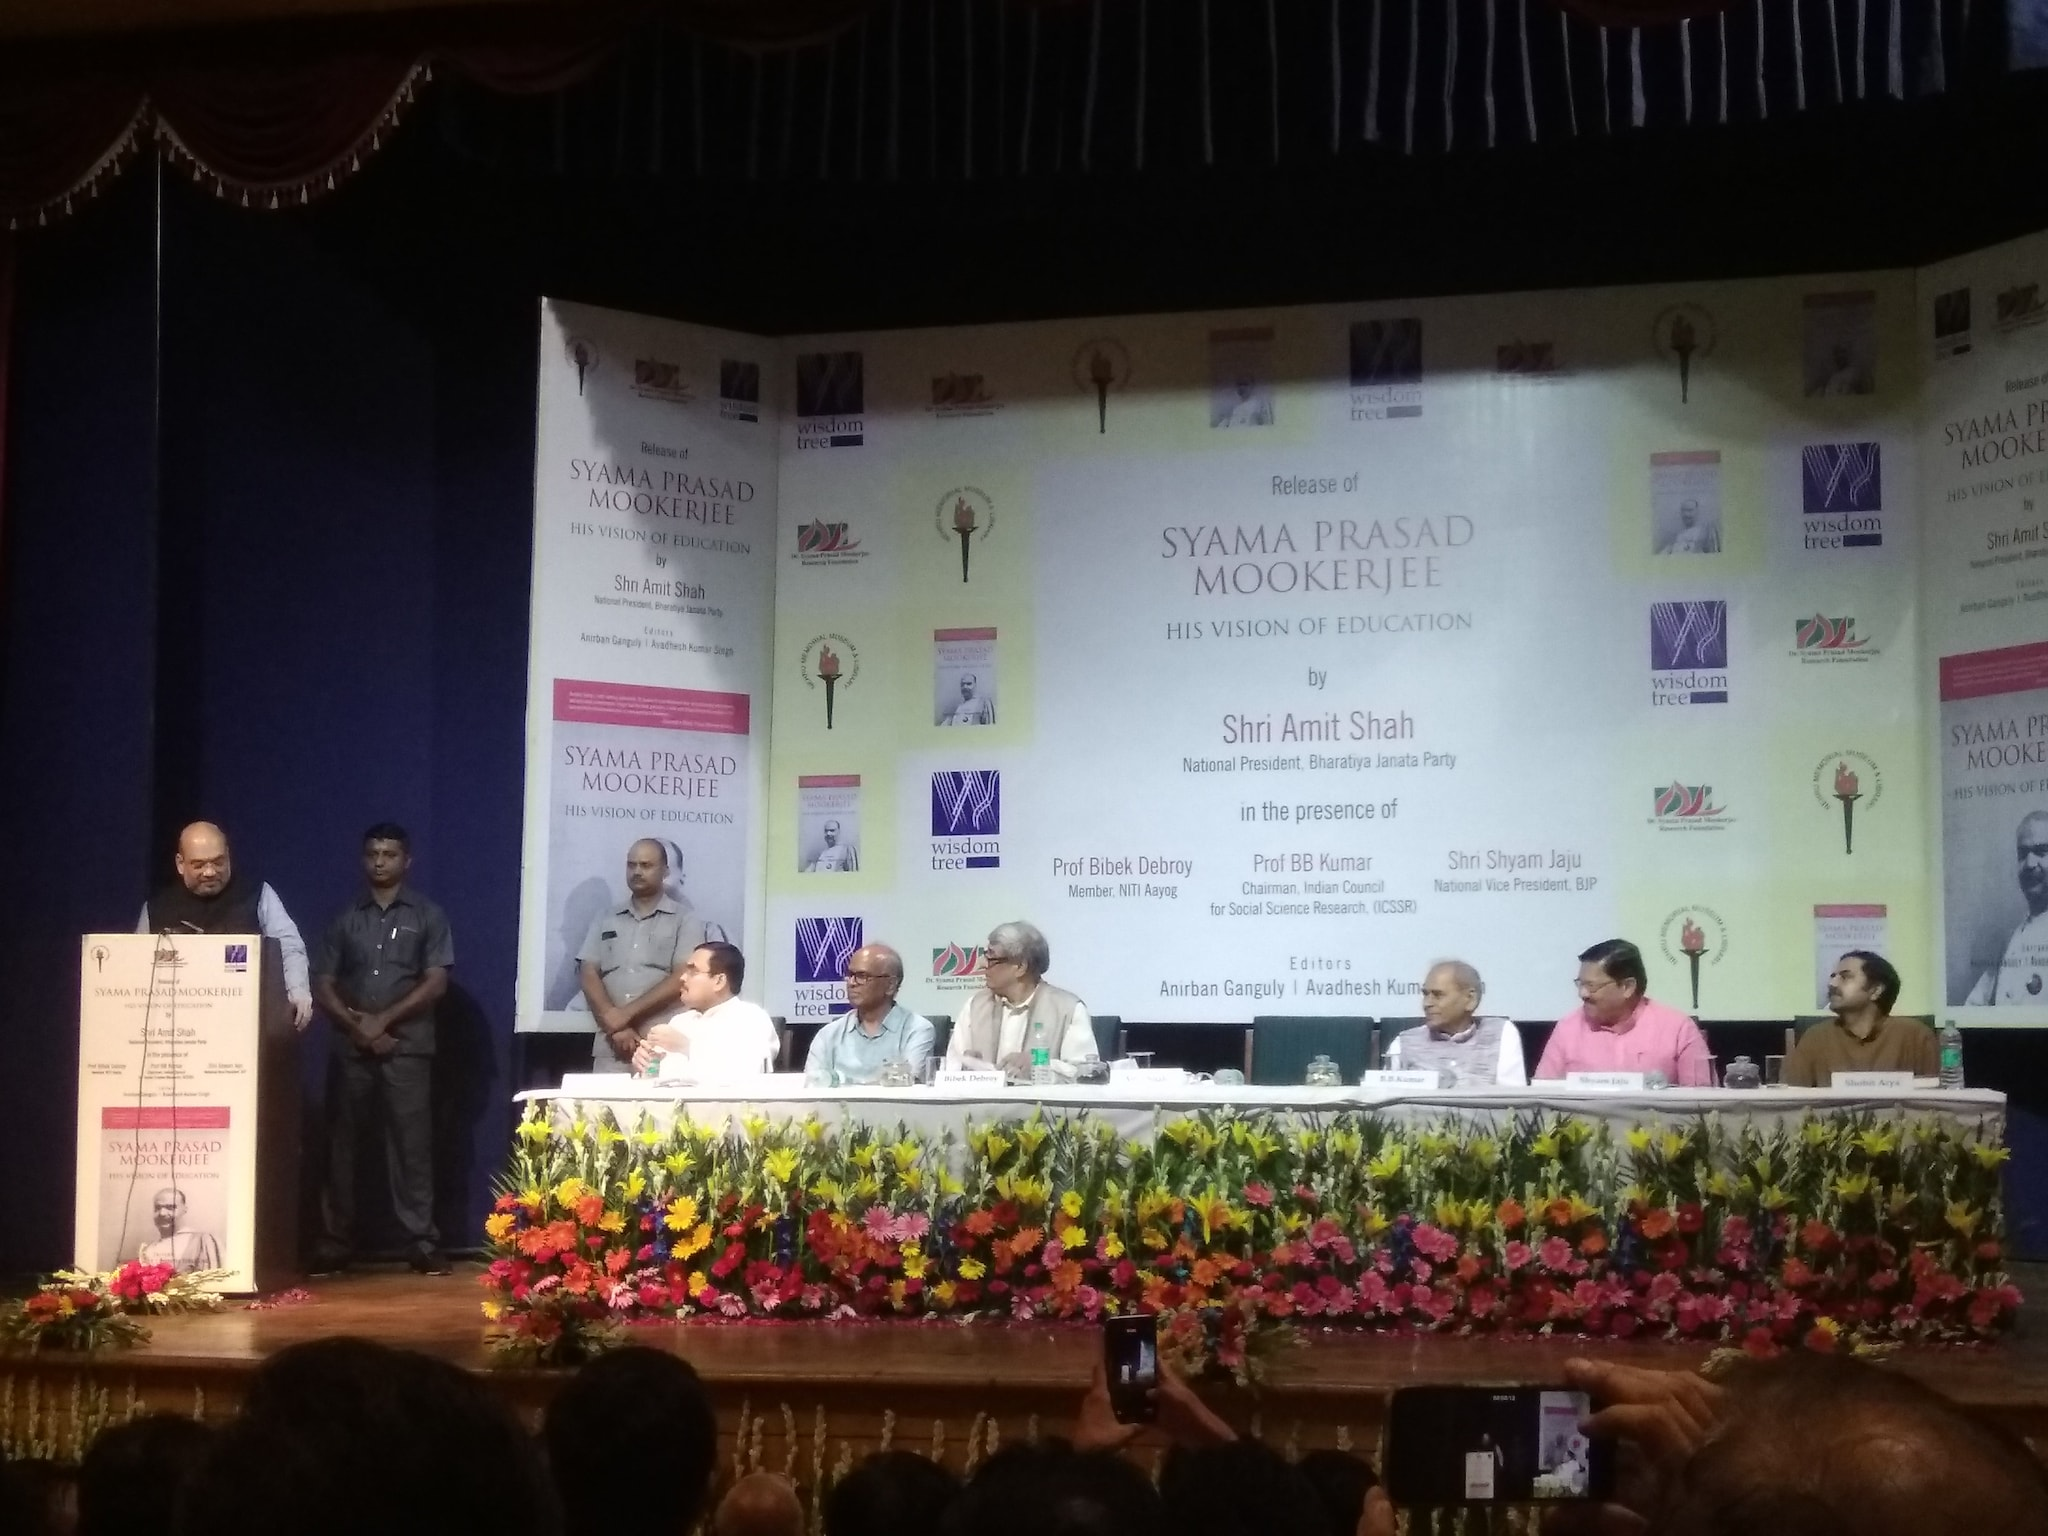 Other speakers at the event included NITI Ayog member Professor Bibek Debroy, Indian Council for Social Science Research chairman BB Kumar and BJP national vice-president Shyam Jaju. (Eram Agha/News18.com)